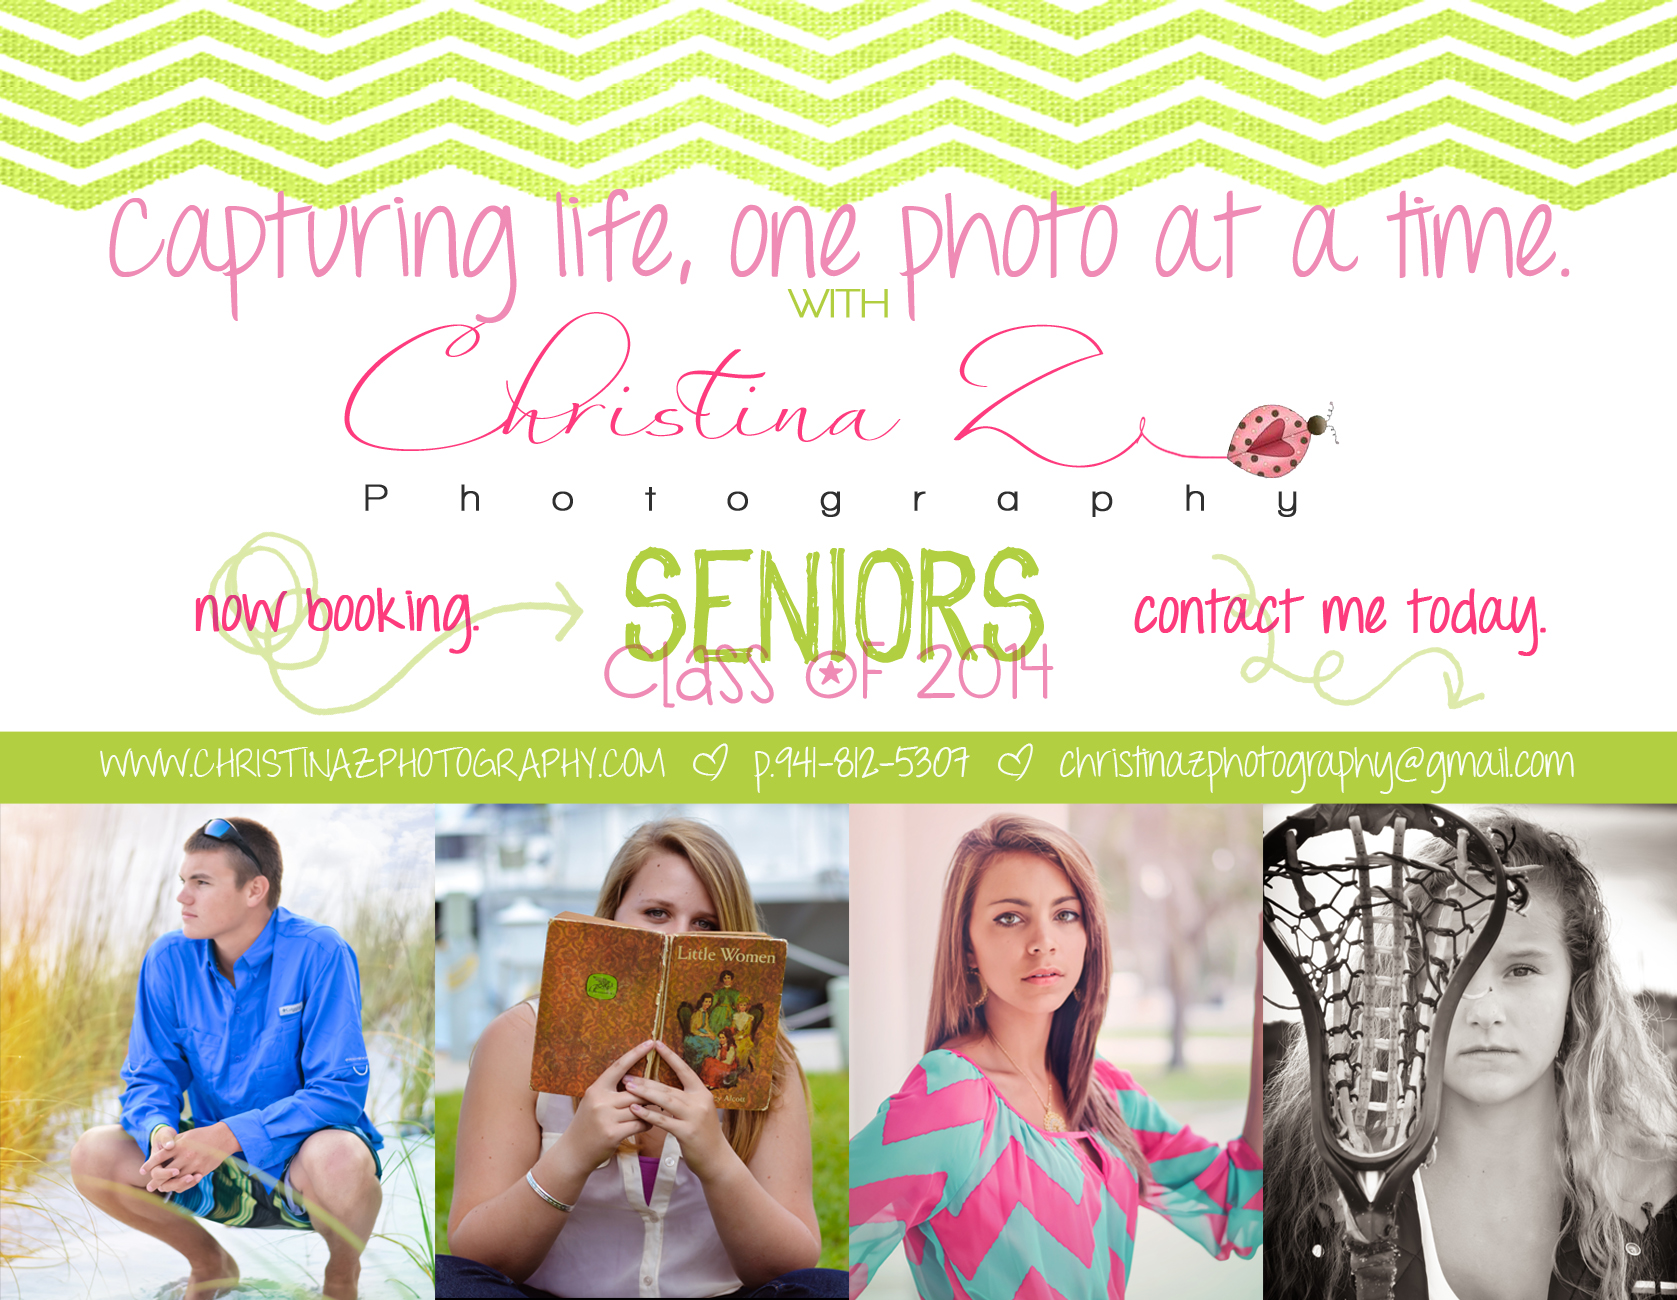 2014 High School Senior Photographer | Christina Z Photography